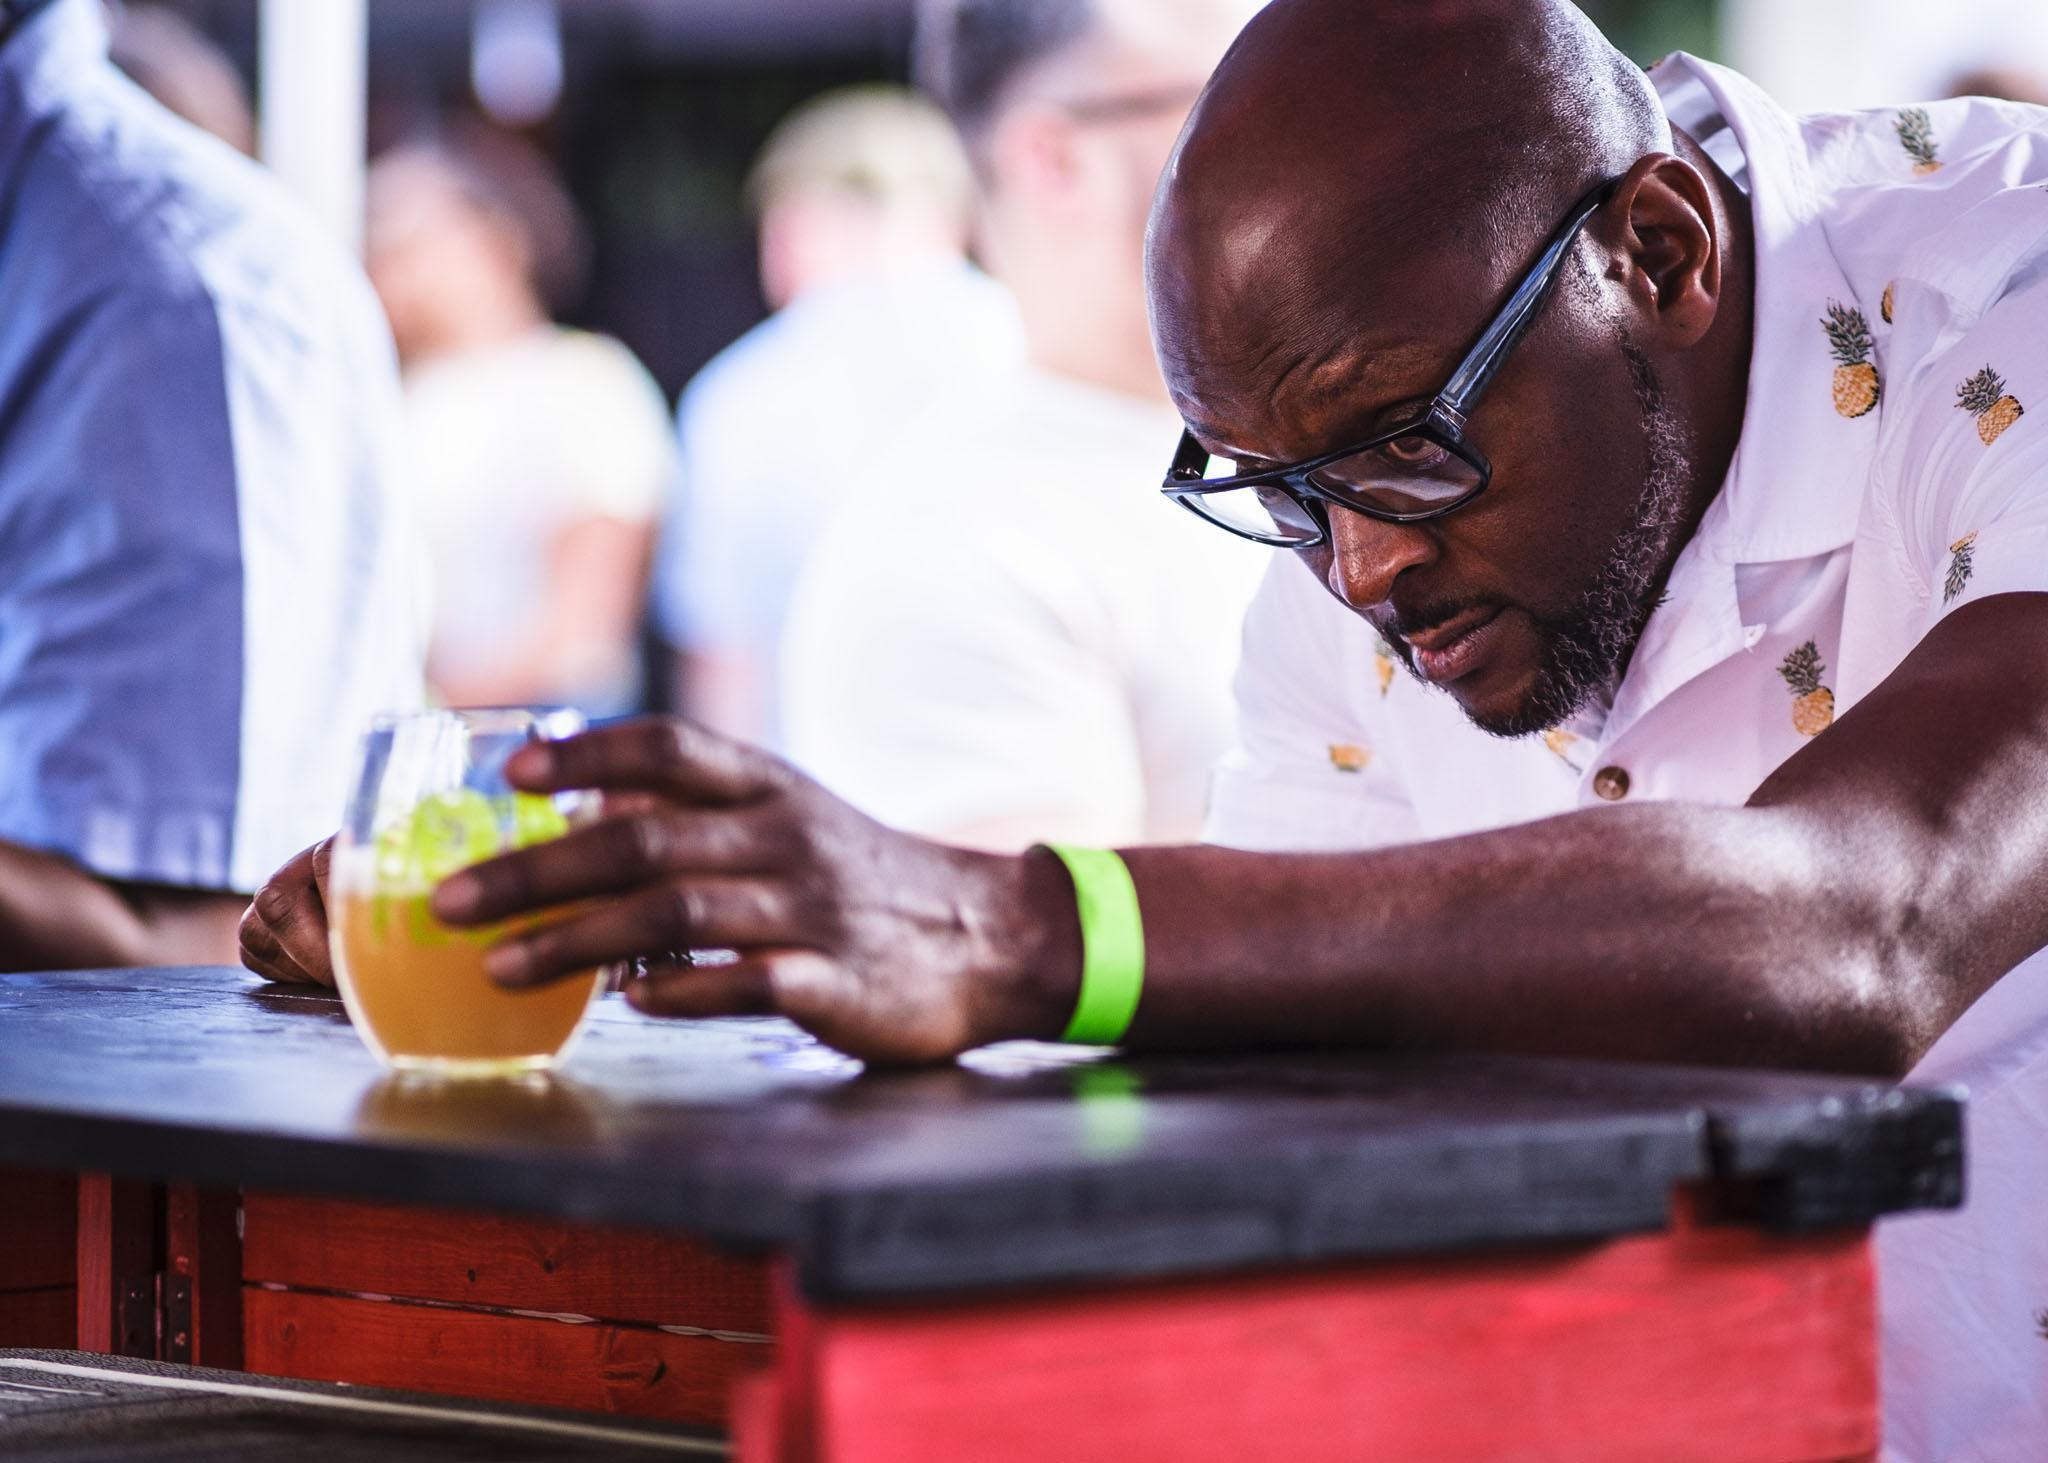 Twenty of the nation's 65 known Black-owned breweries collaborated on special beers to participate in this year's Fresh Fest, the first festival to focus on Black-owned breweries. After two successful years on Pittsburgh's Northside, the festival went digital this year, as a safety precaution to the pandemic.